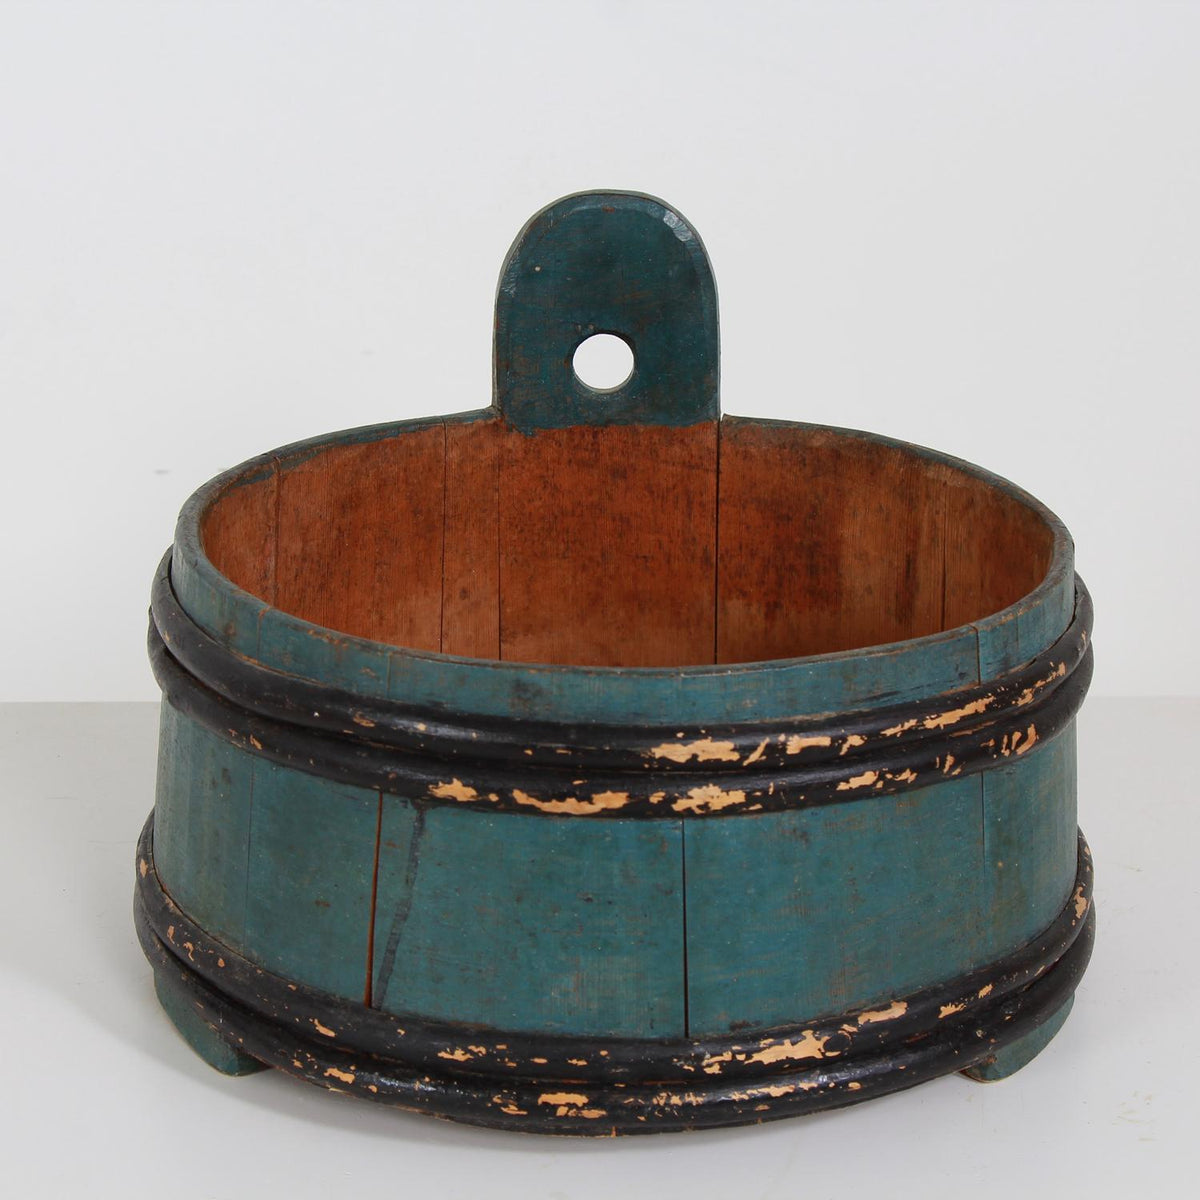 Swedish 19thC Folk Art Organic  Banded Vessel With Appealing Patina